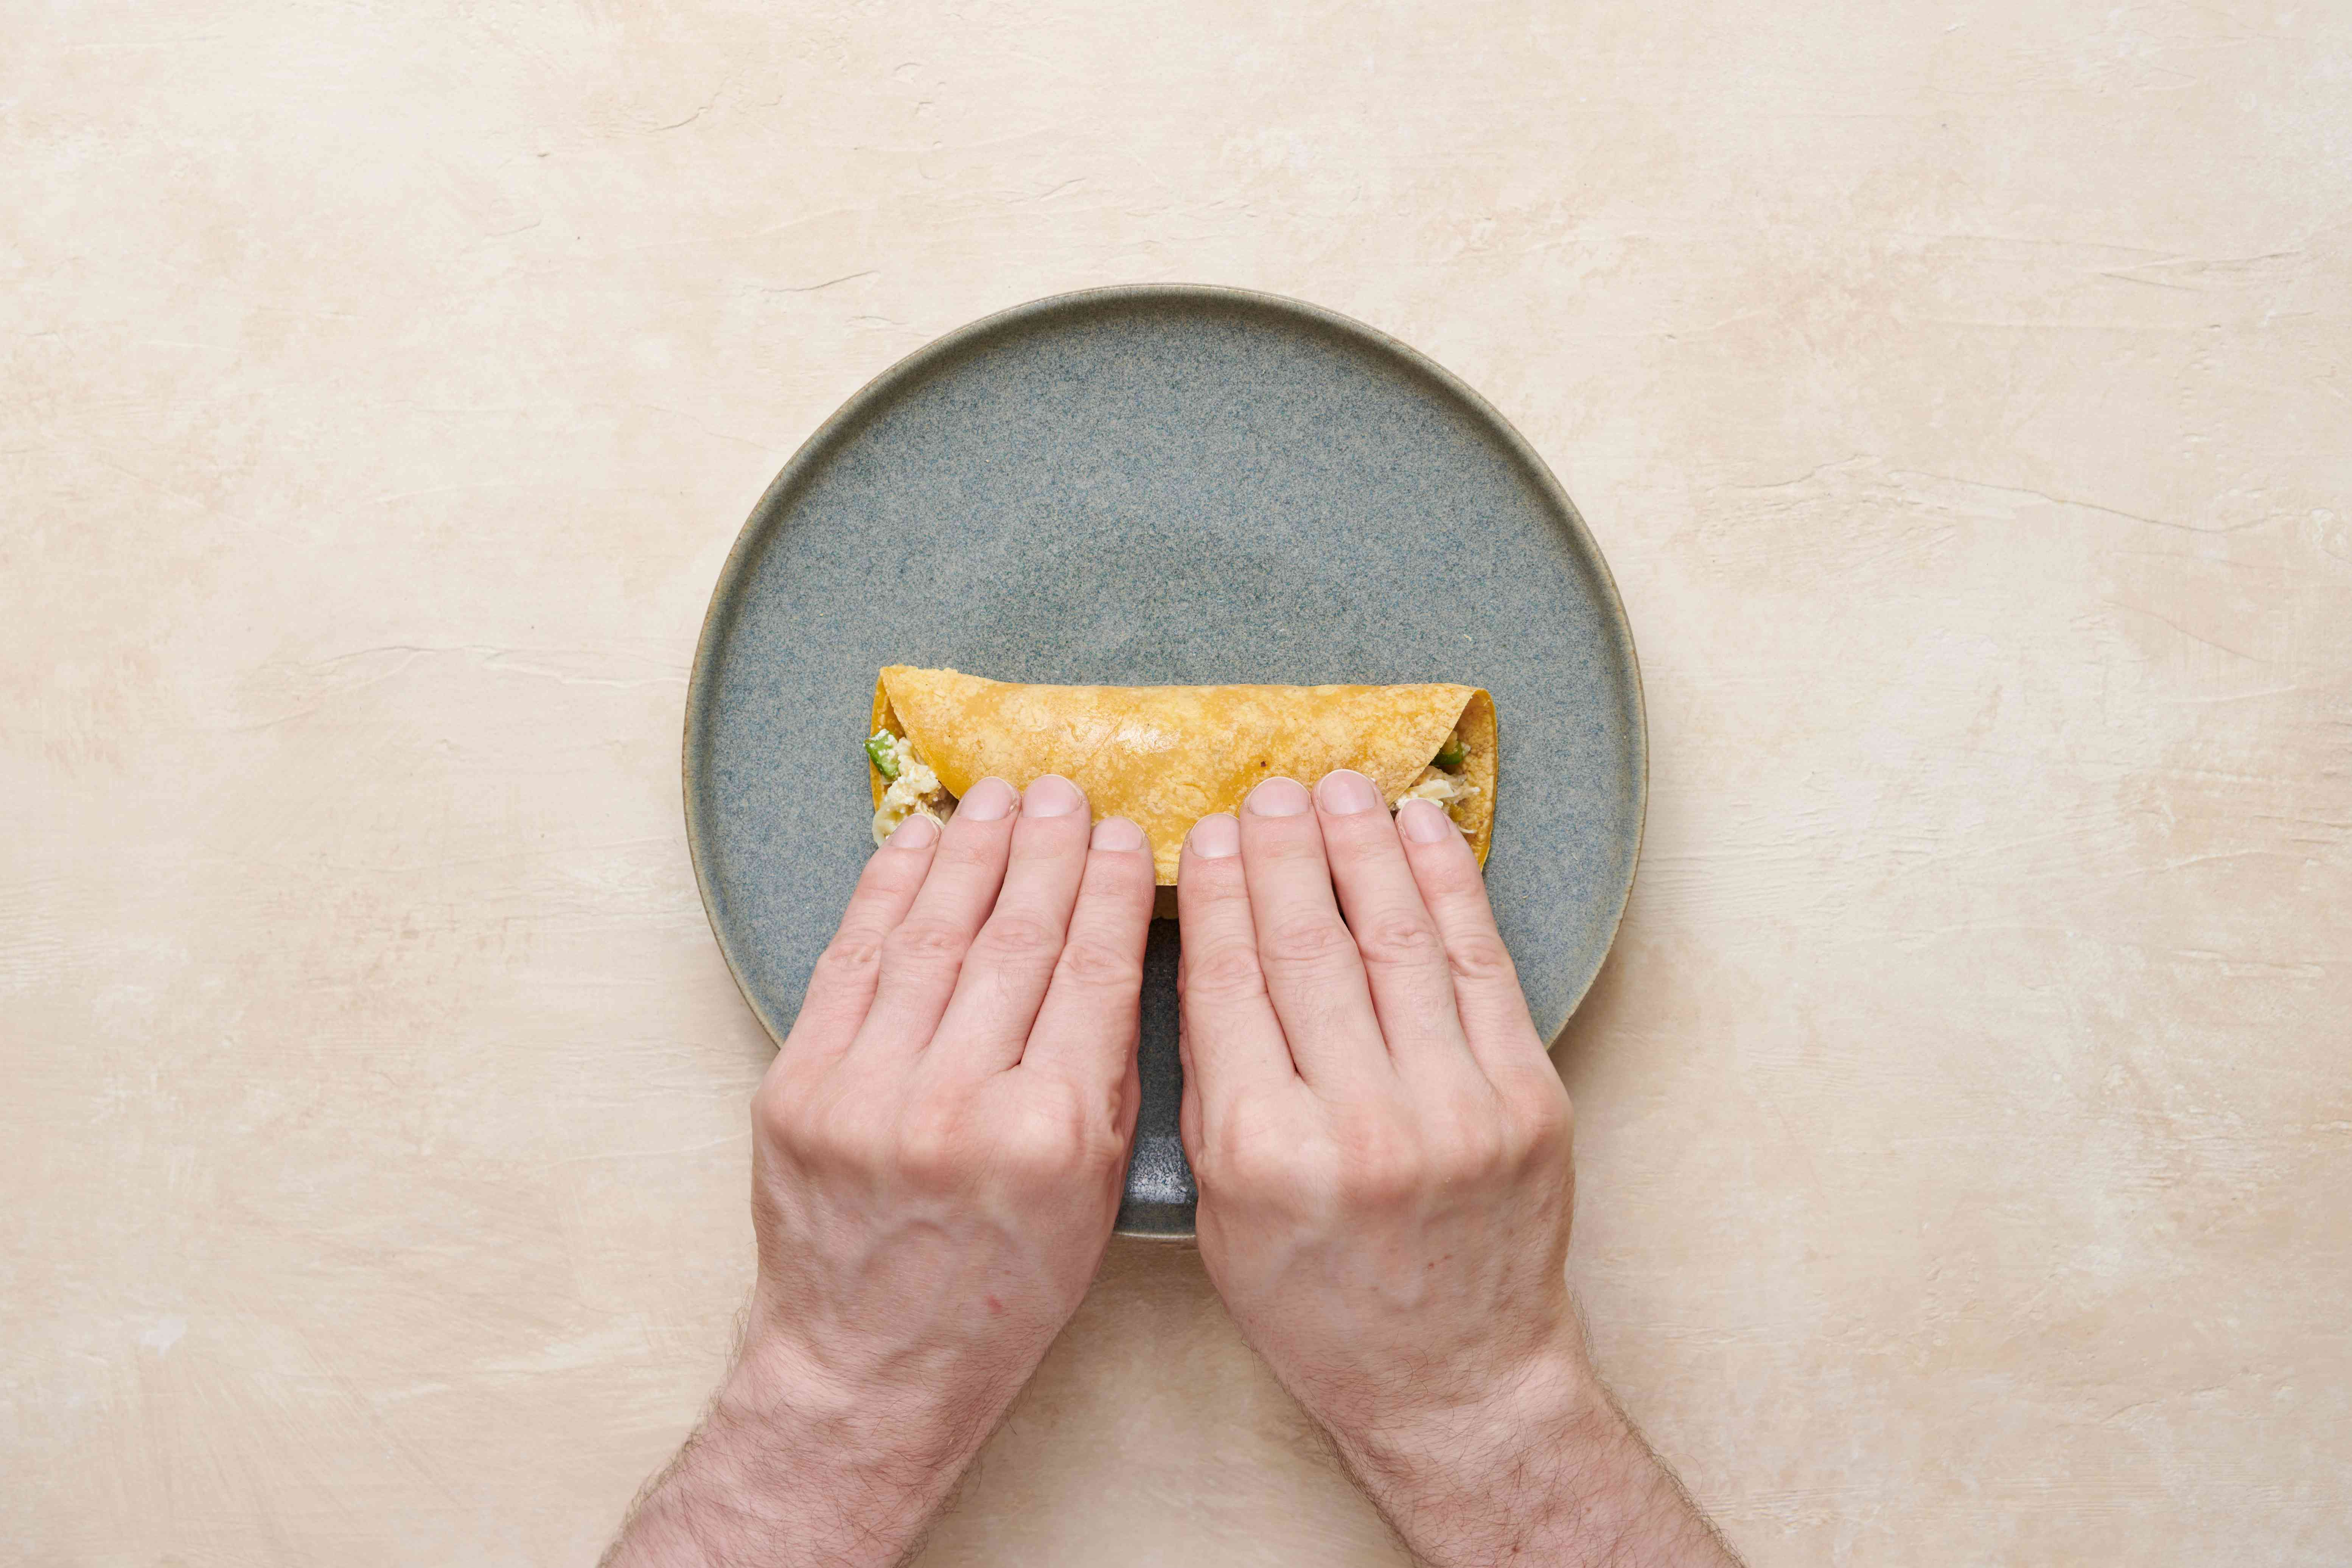 Folding the enchilada around the filling, on a plate